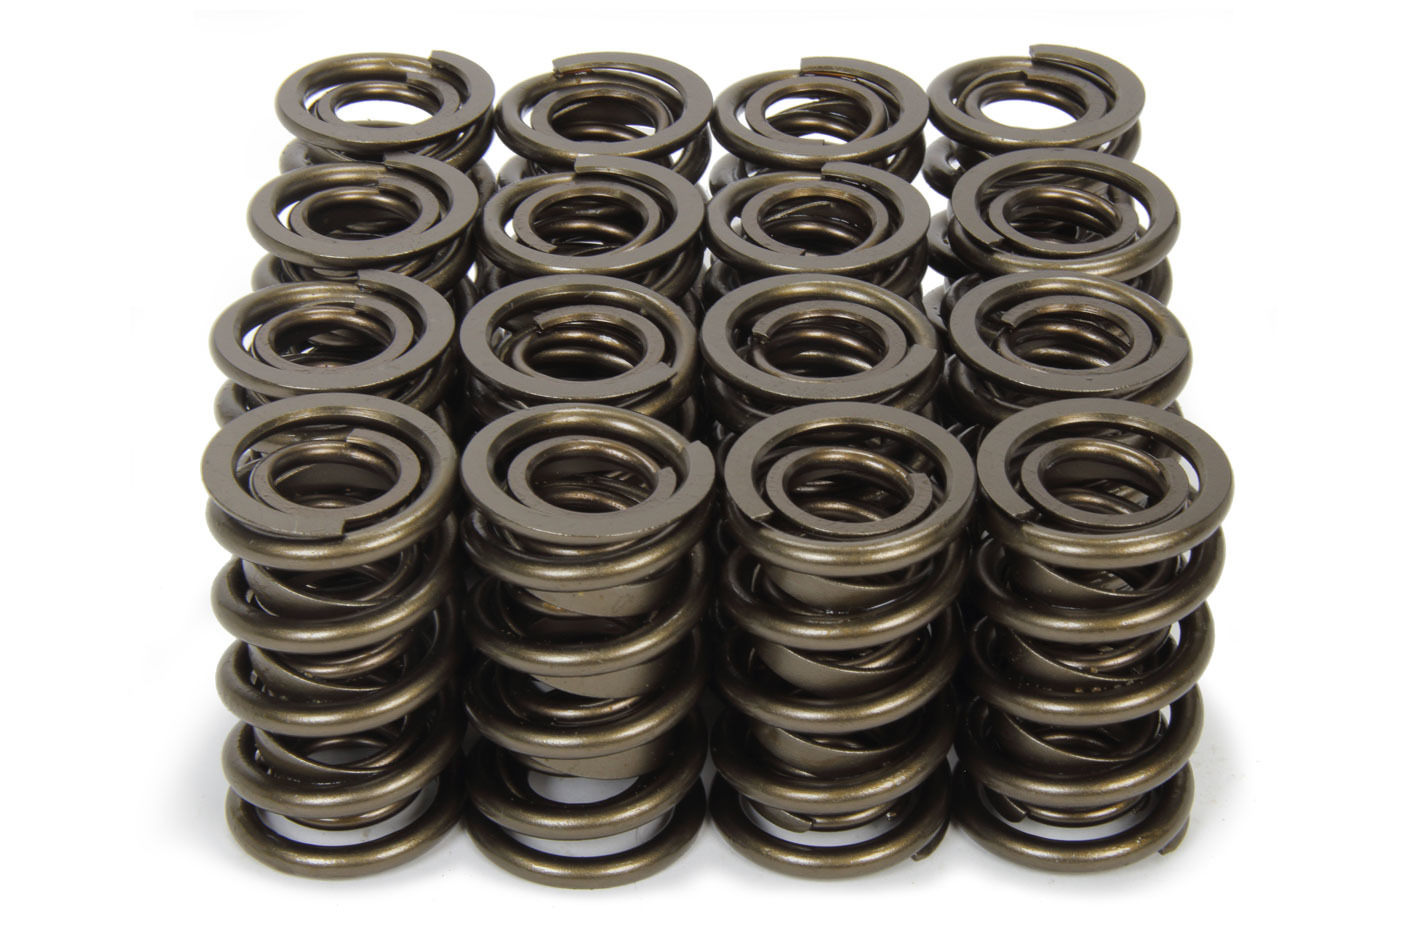 Isky Cams 9989RAD Valve Spring, RAD-9000, Dual Spring / Damper, 710 lb/in Spring Rate, 1.200 in Coil Bind, 1.570 in OD, Set of 16